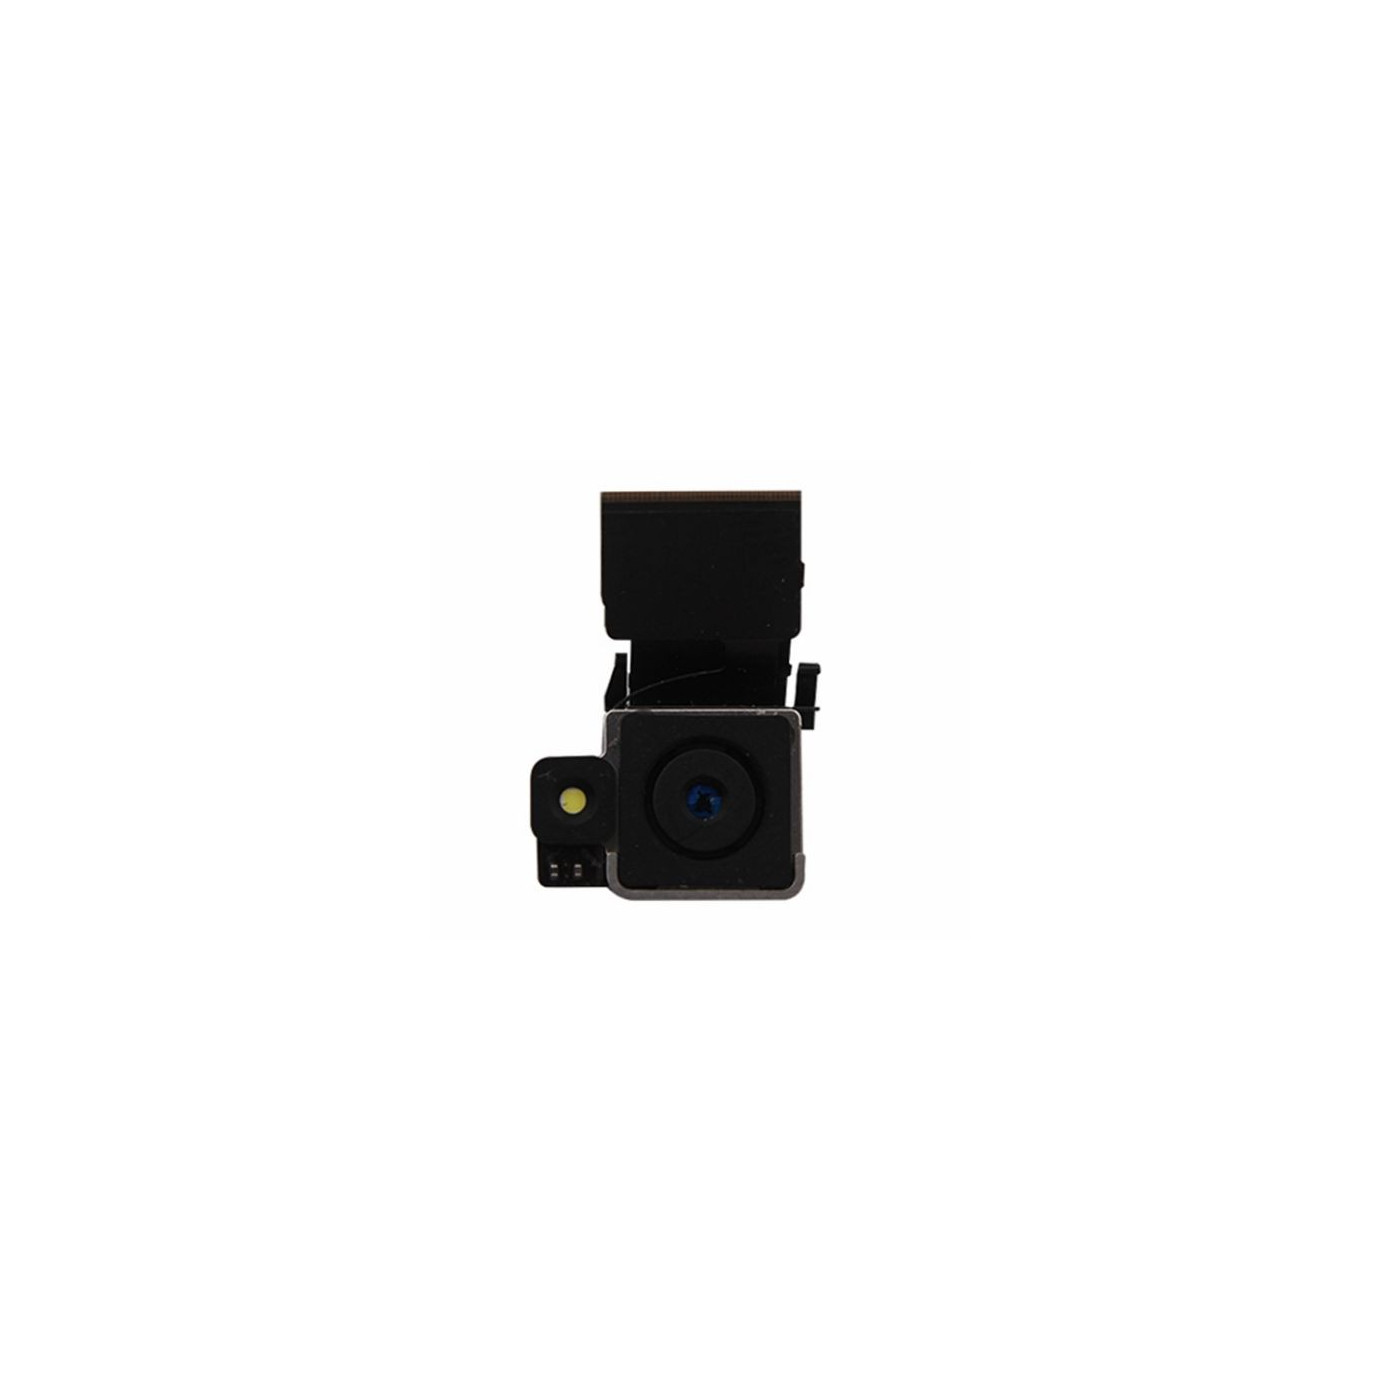 Rear camera back for iphone 4s 8 mpx flash parts